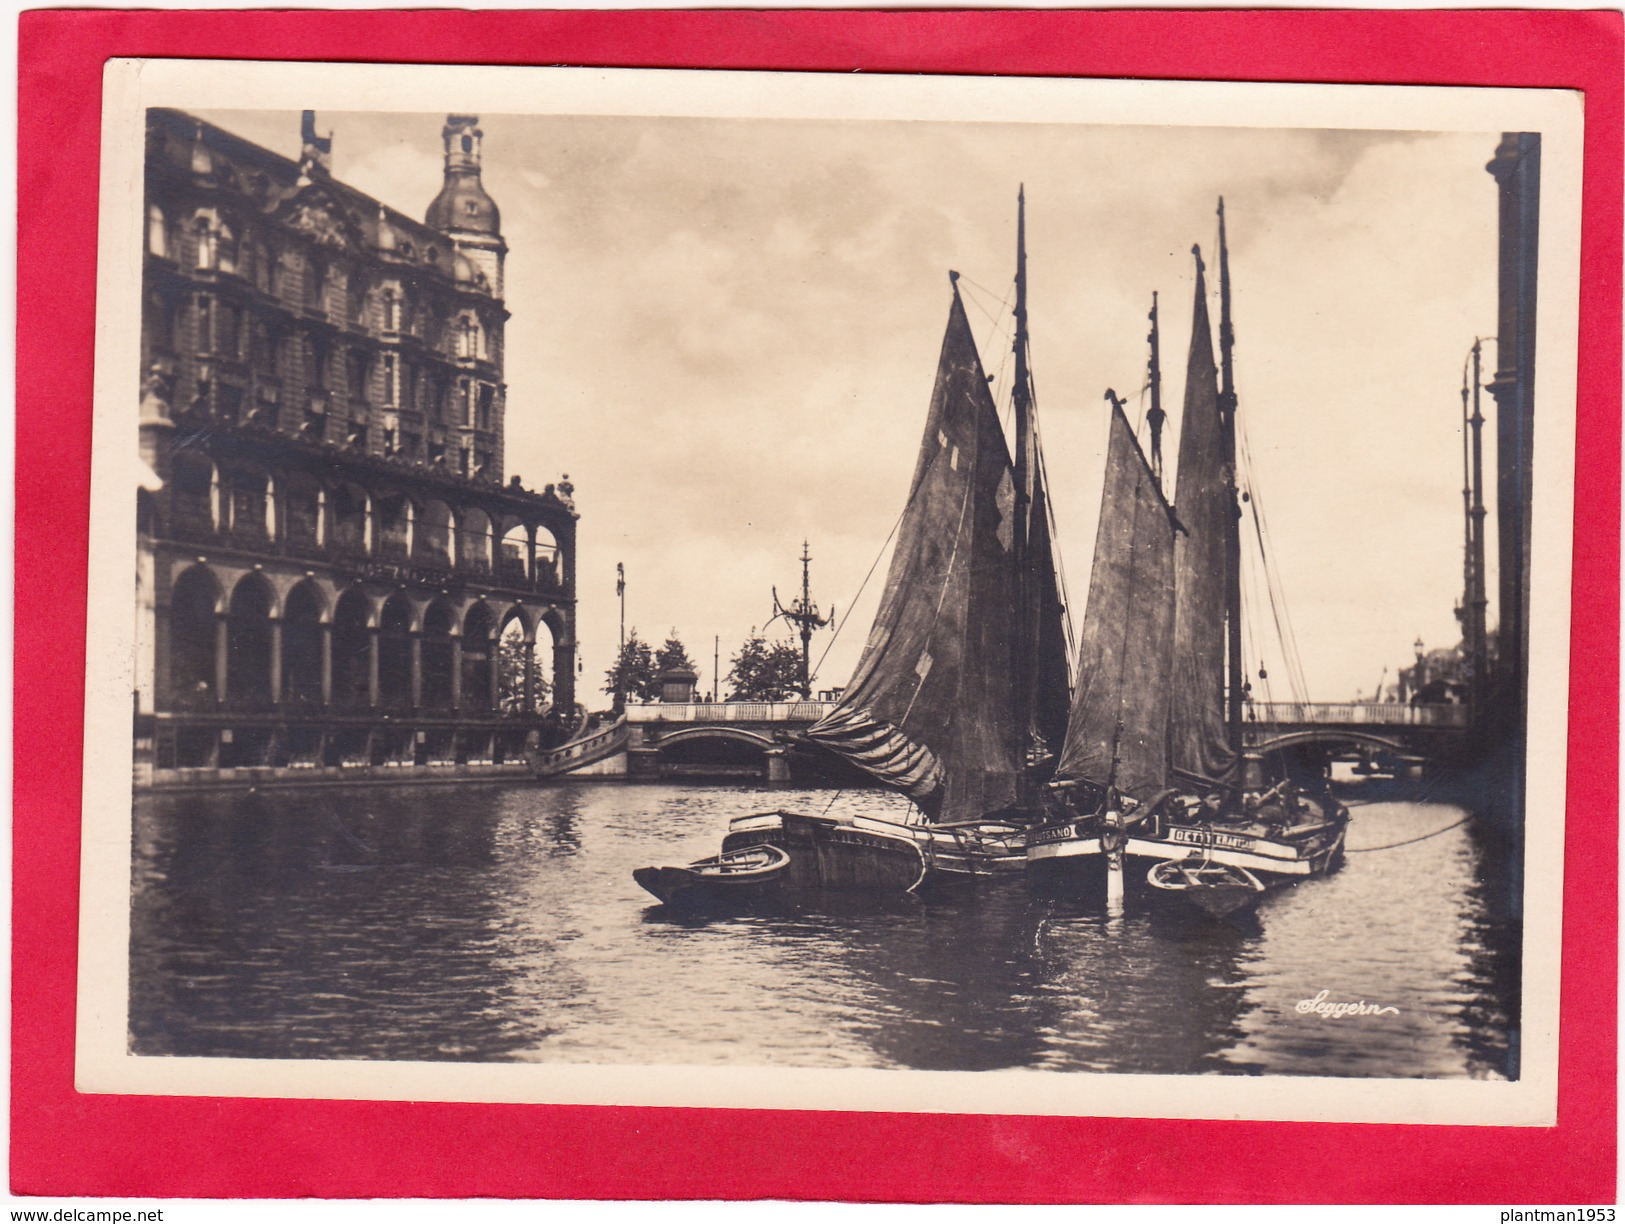 Reproduction?,Modern Post Card Of Kleine Alster,Hamburg,Germany,D16. - Germany